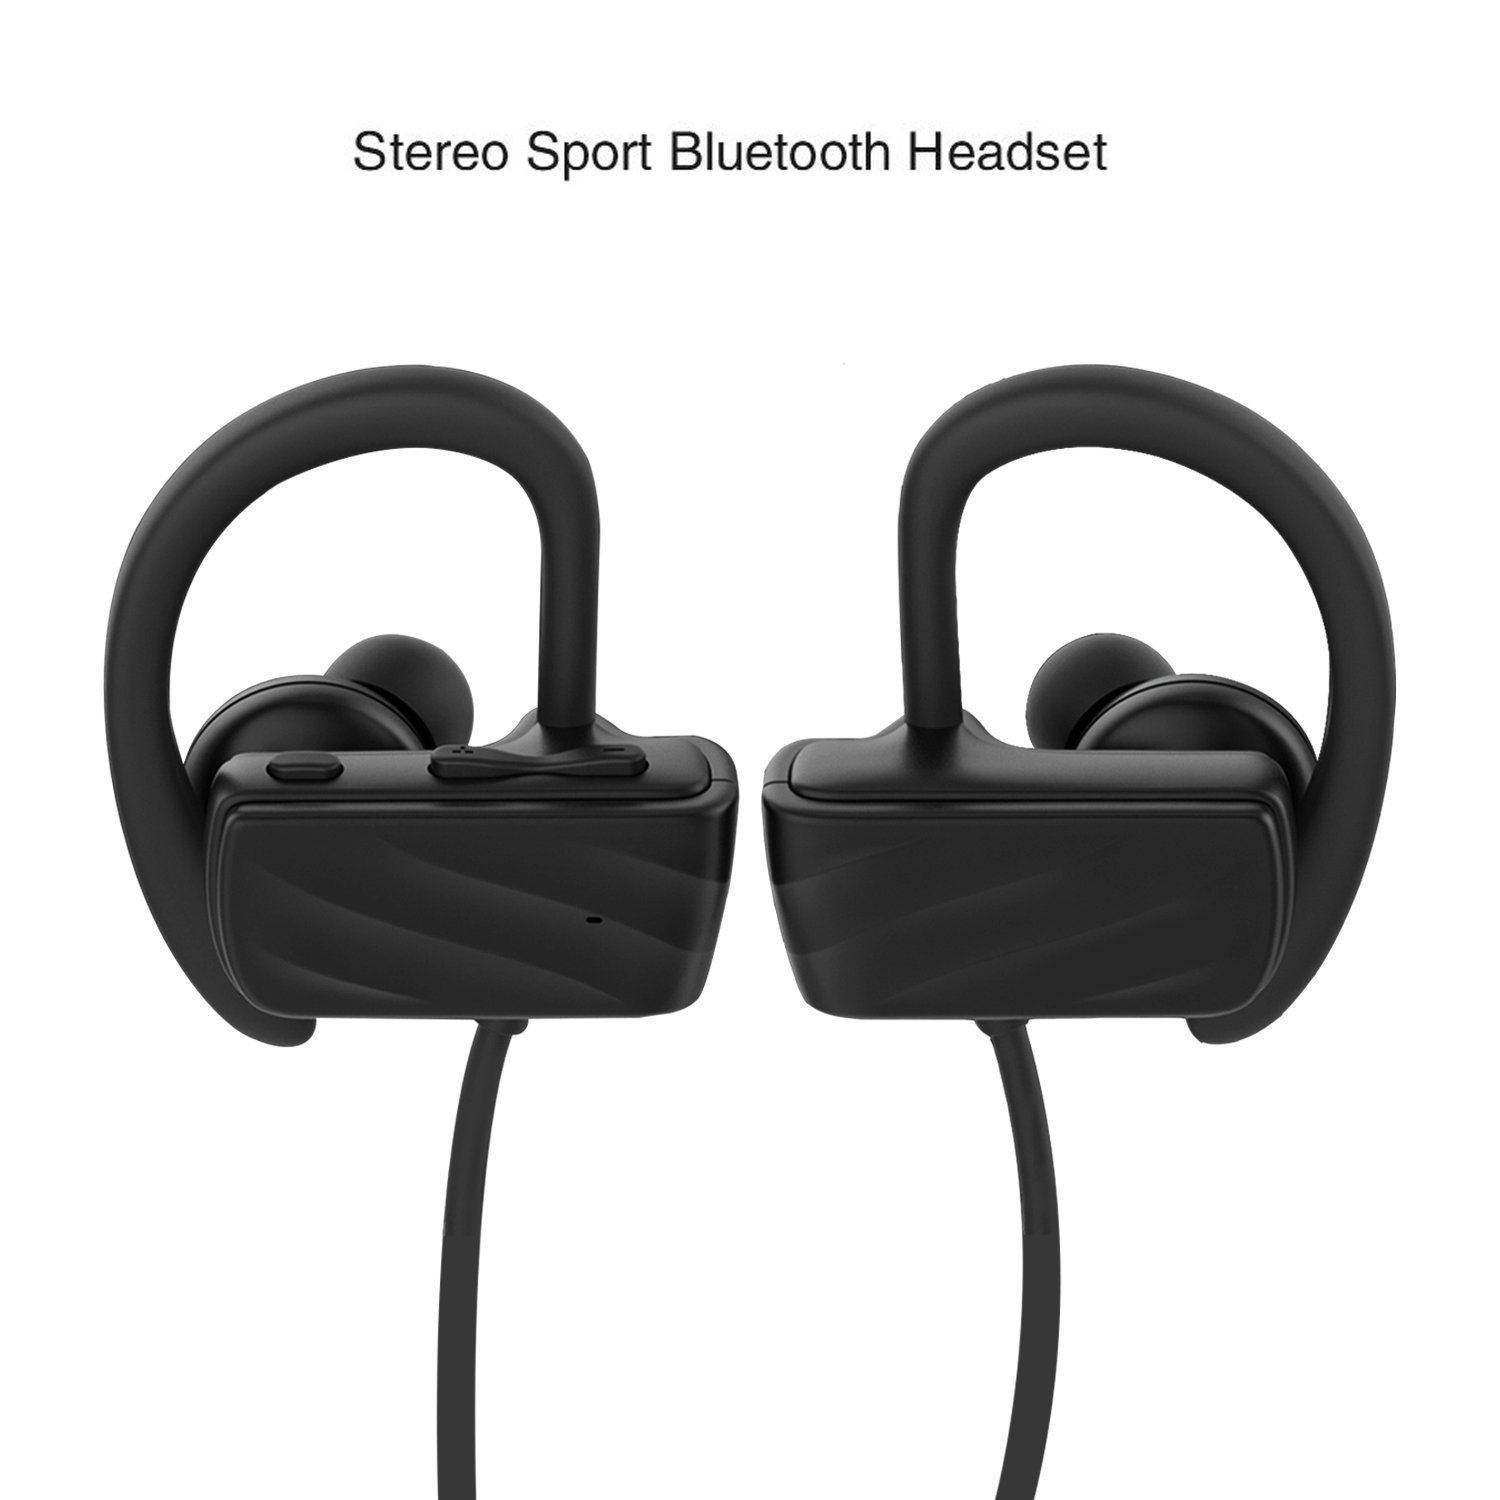 saiveina Bluetooth Headset Wireless Bluetooth 4.1 Headset with Mic  Noise-Cancelling In-Ear Headphones Headset Sport Waterproof IPX4 for iPhone  Android ... 5e959e7c9c411